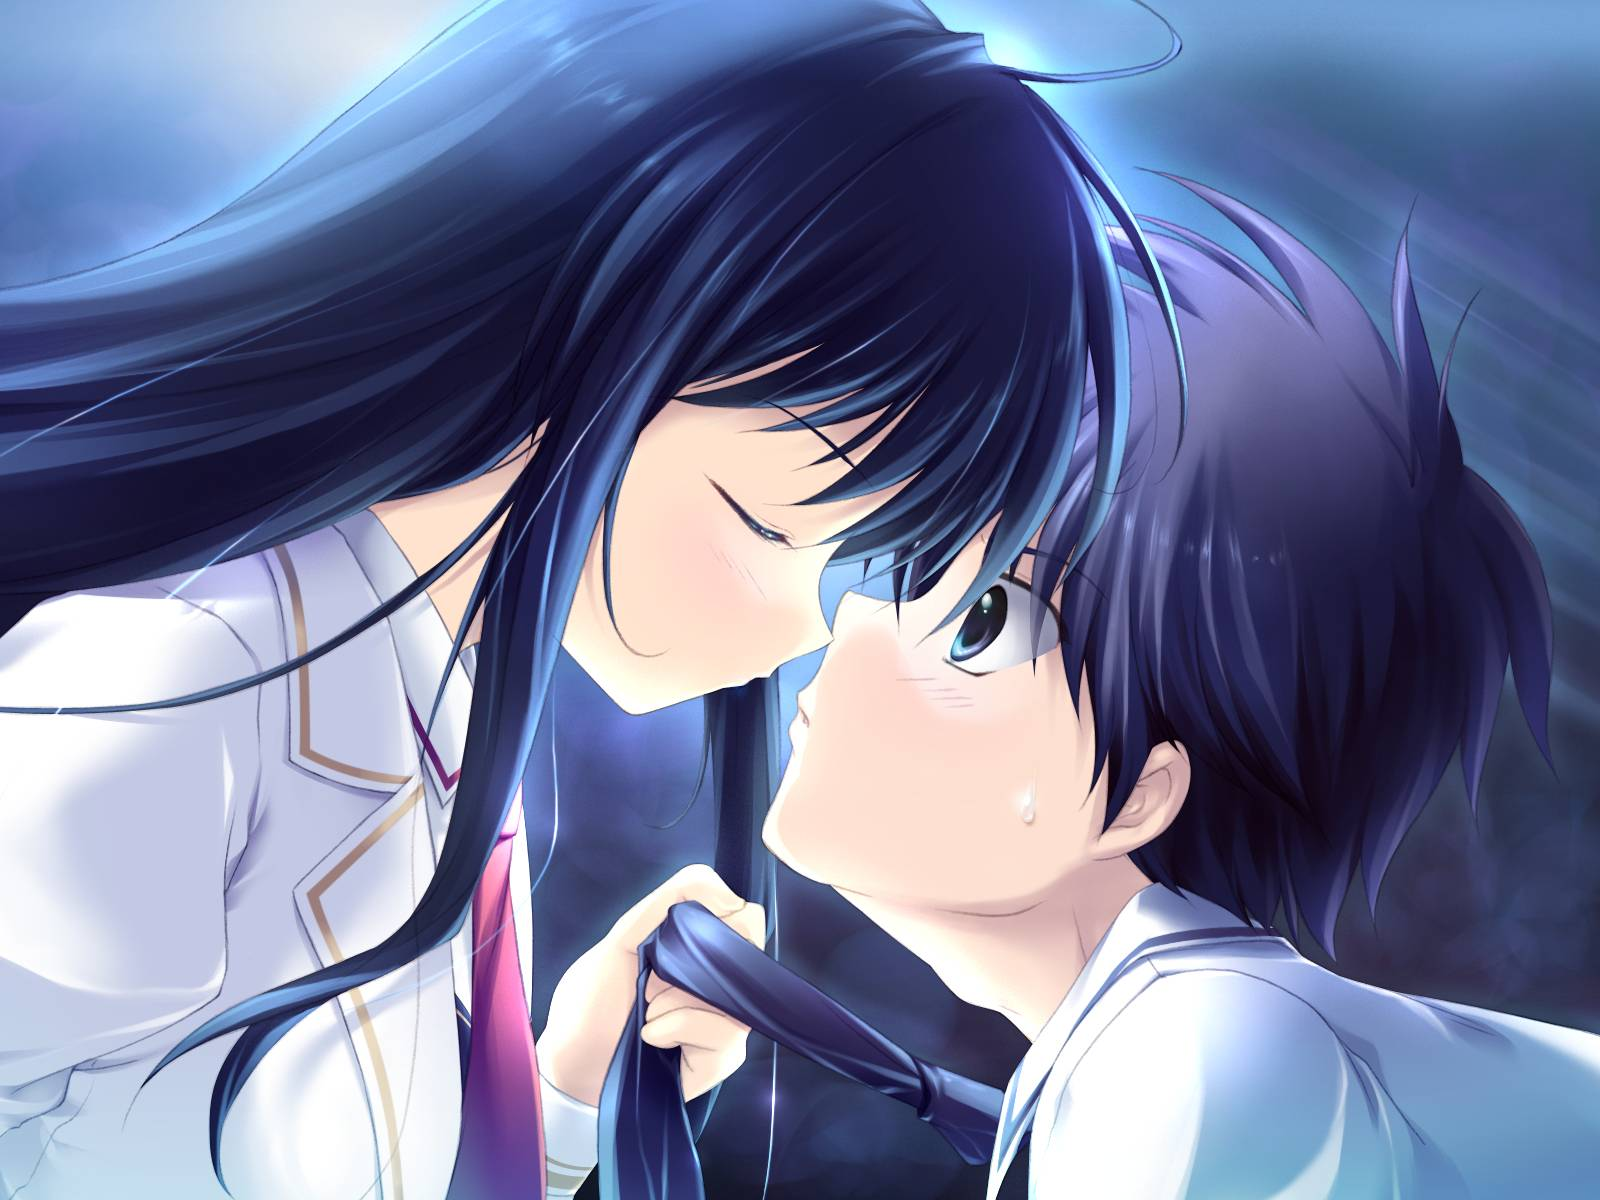 Love Wallpaper With Girl : Anime Love Wallpapers - Wallpaper cave